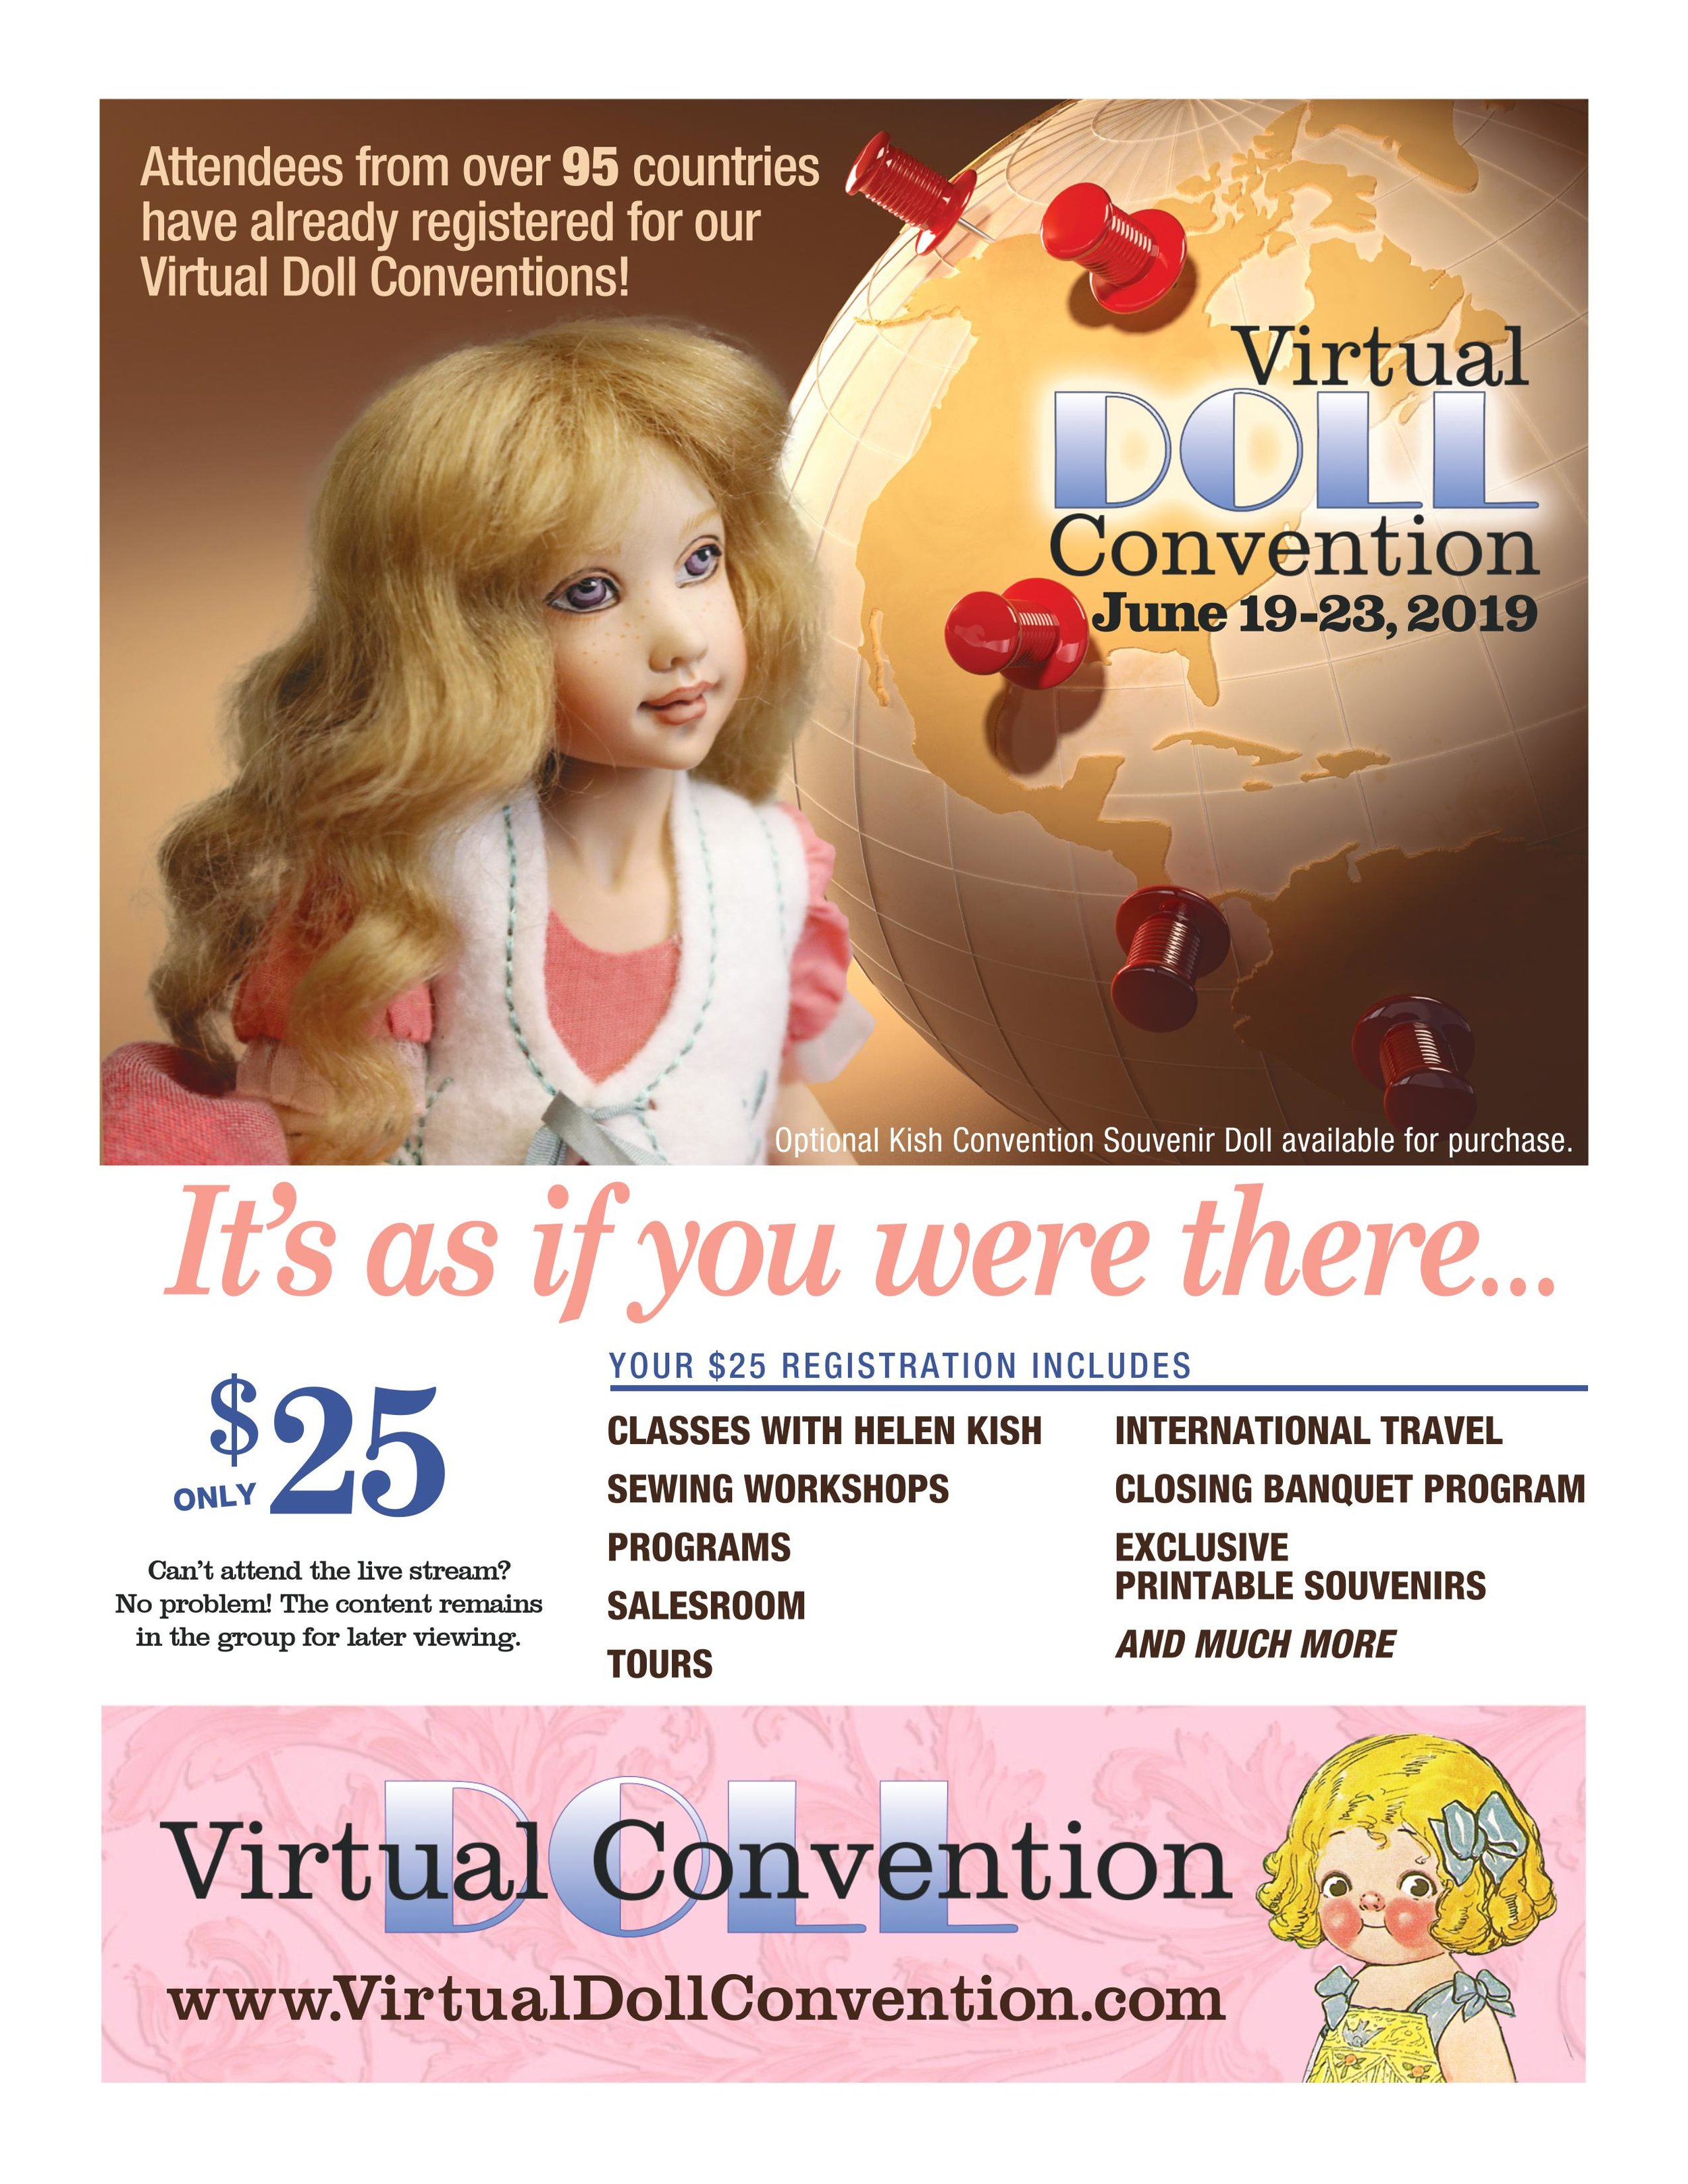 Virtual Doll Convention.jpg